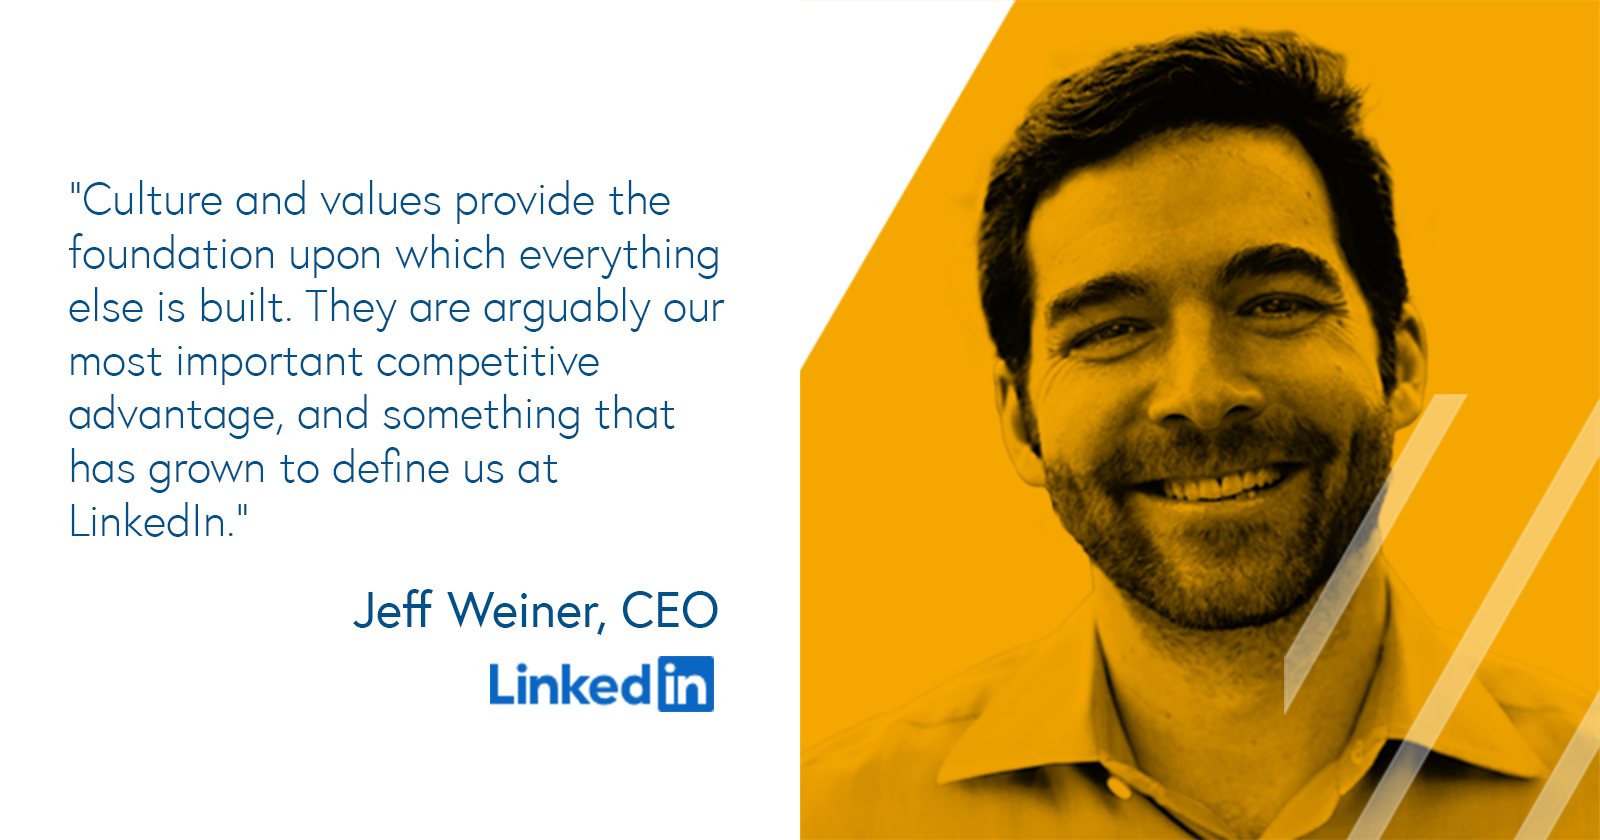 Jeff Weiner, CEO of LinkedIn on building a business culture based on strong values